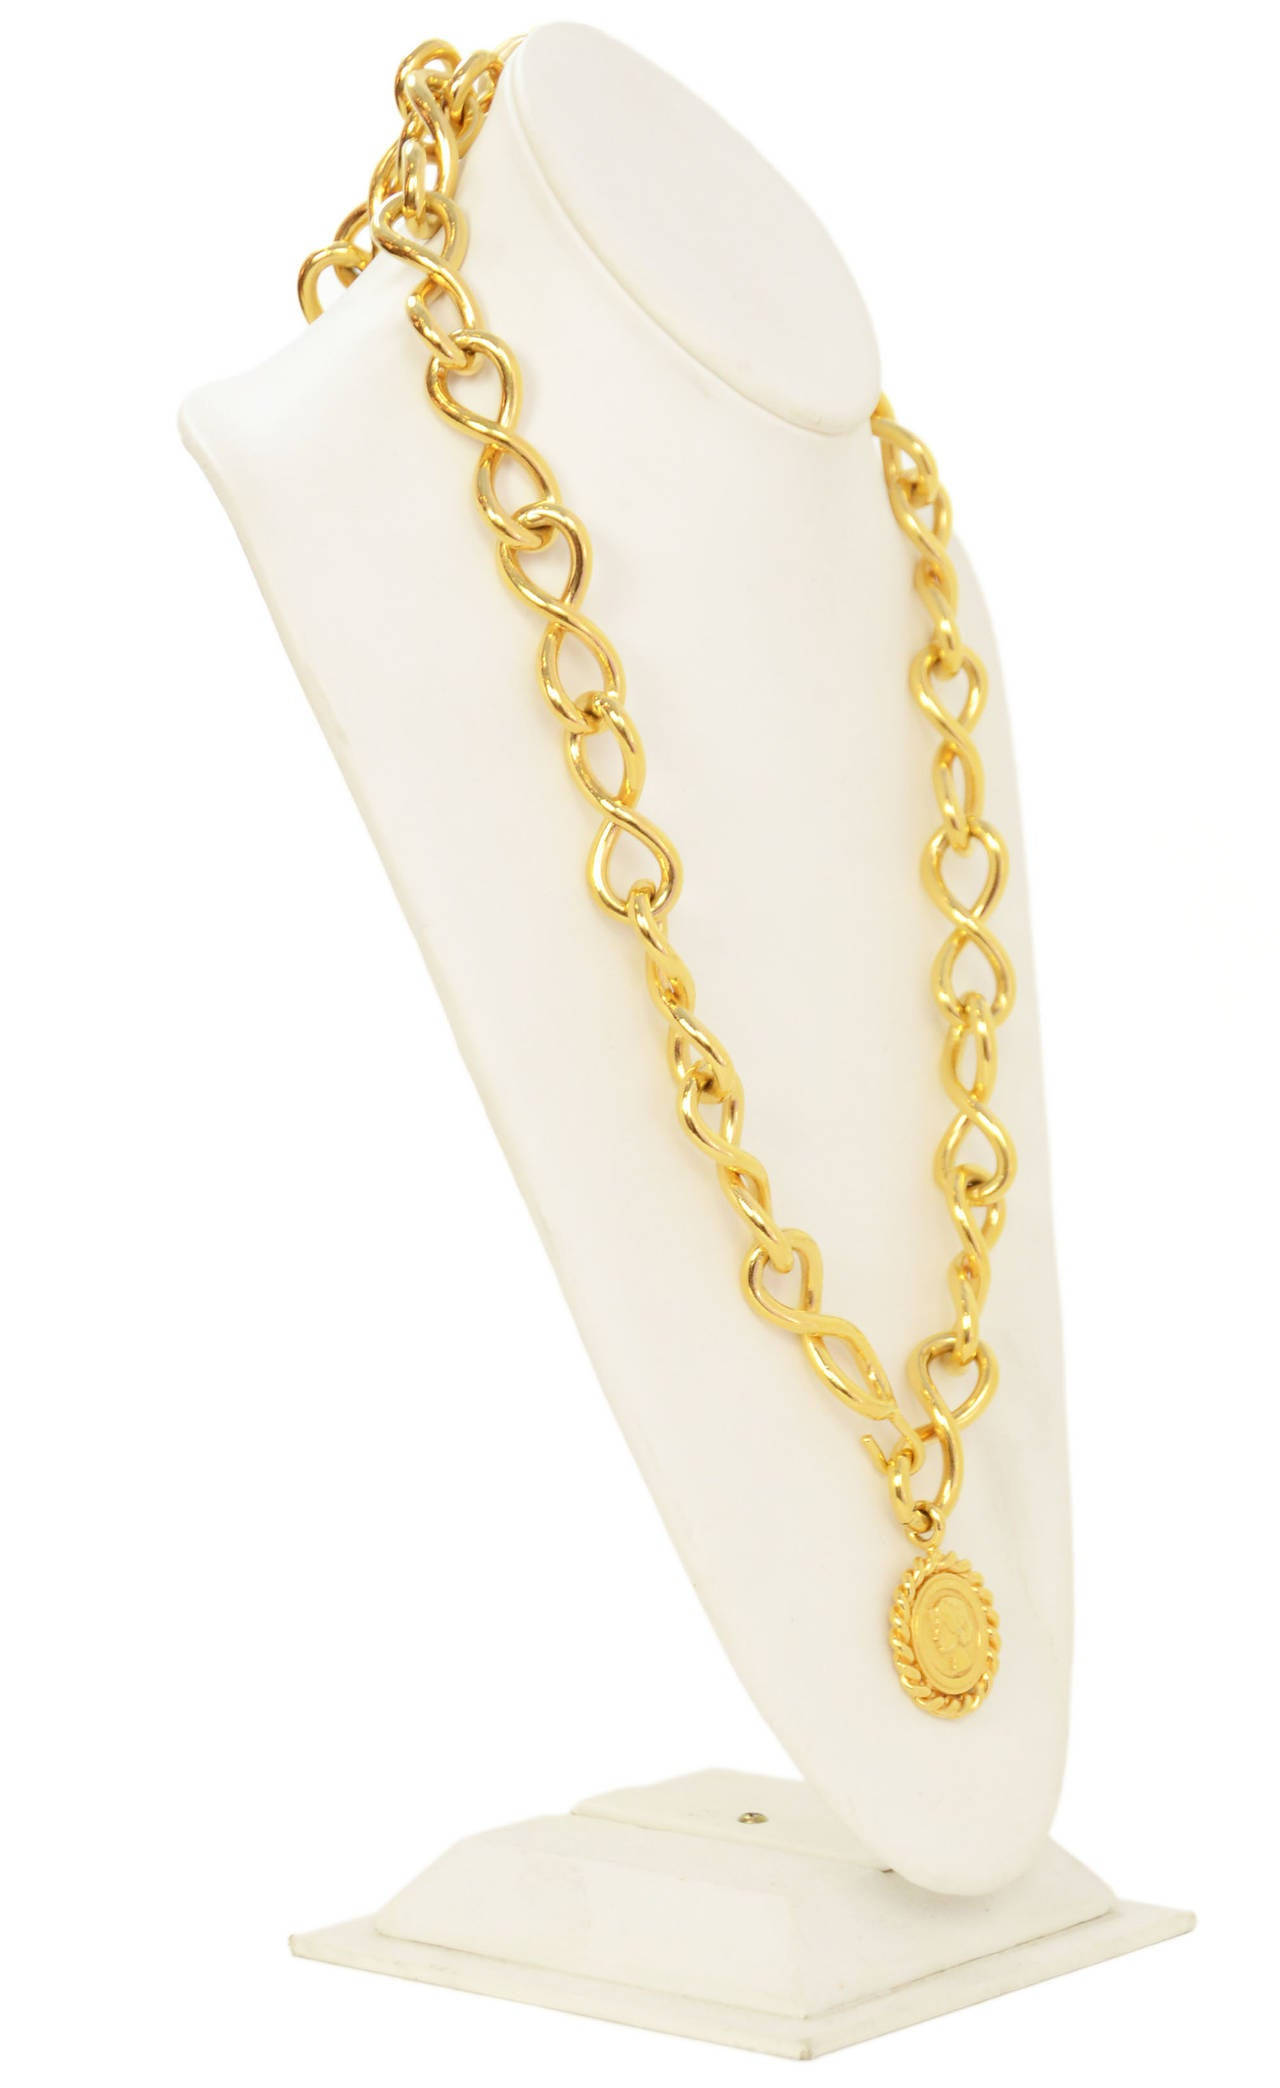 Chanel Vintage Gold Chain Link Belt/Necklace w/Coin PendantFeatures dangling coin/Coco charm